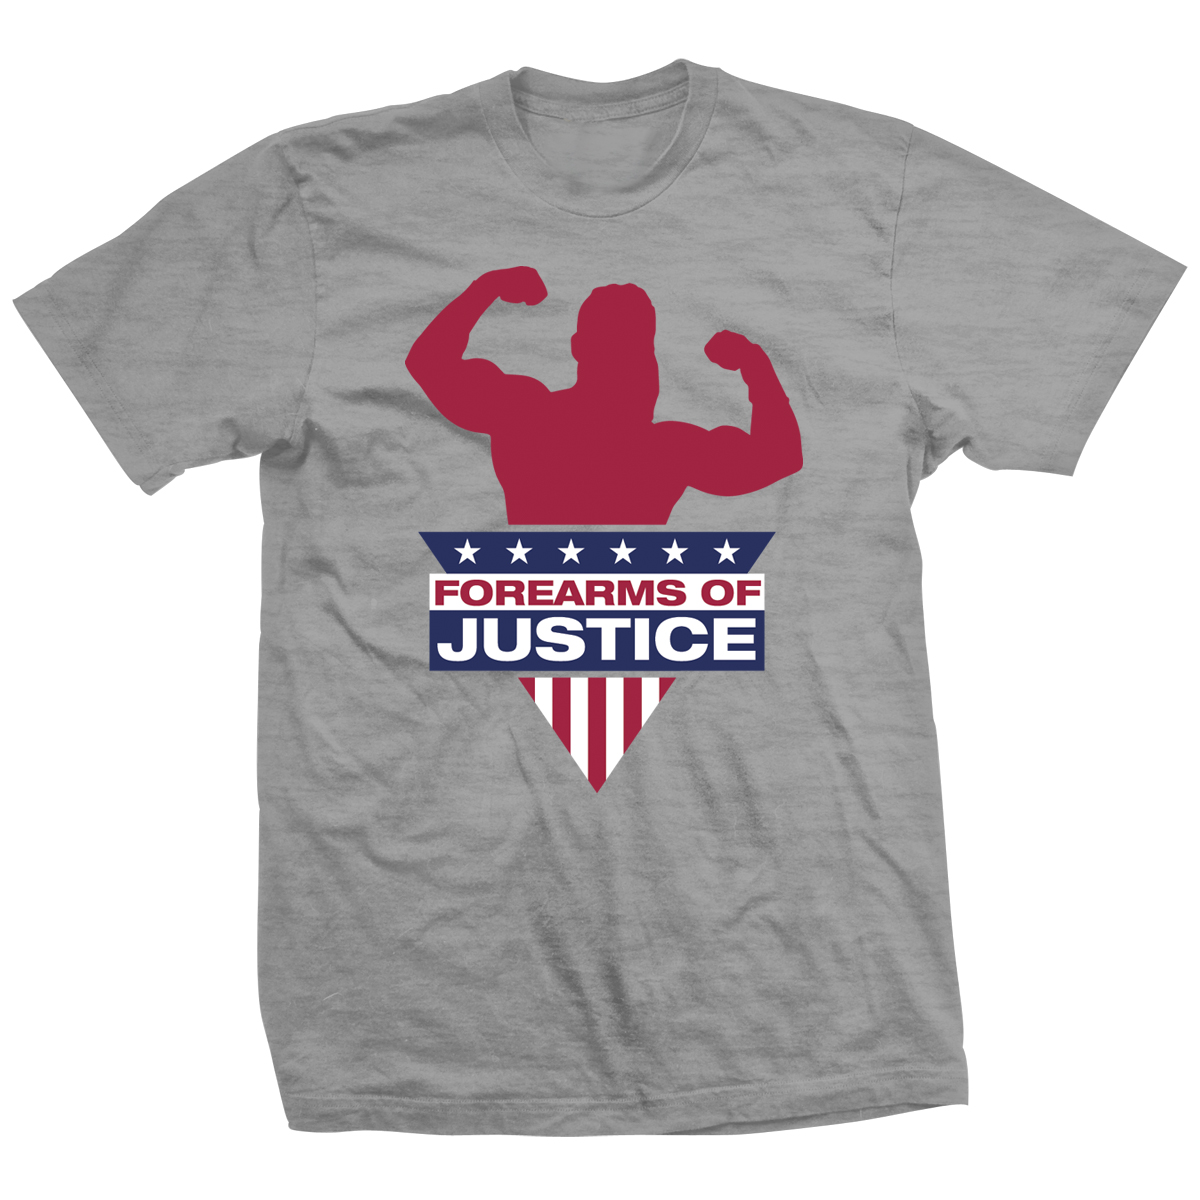 Matt Cross Forearms of Justice T-shirt